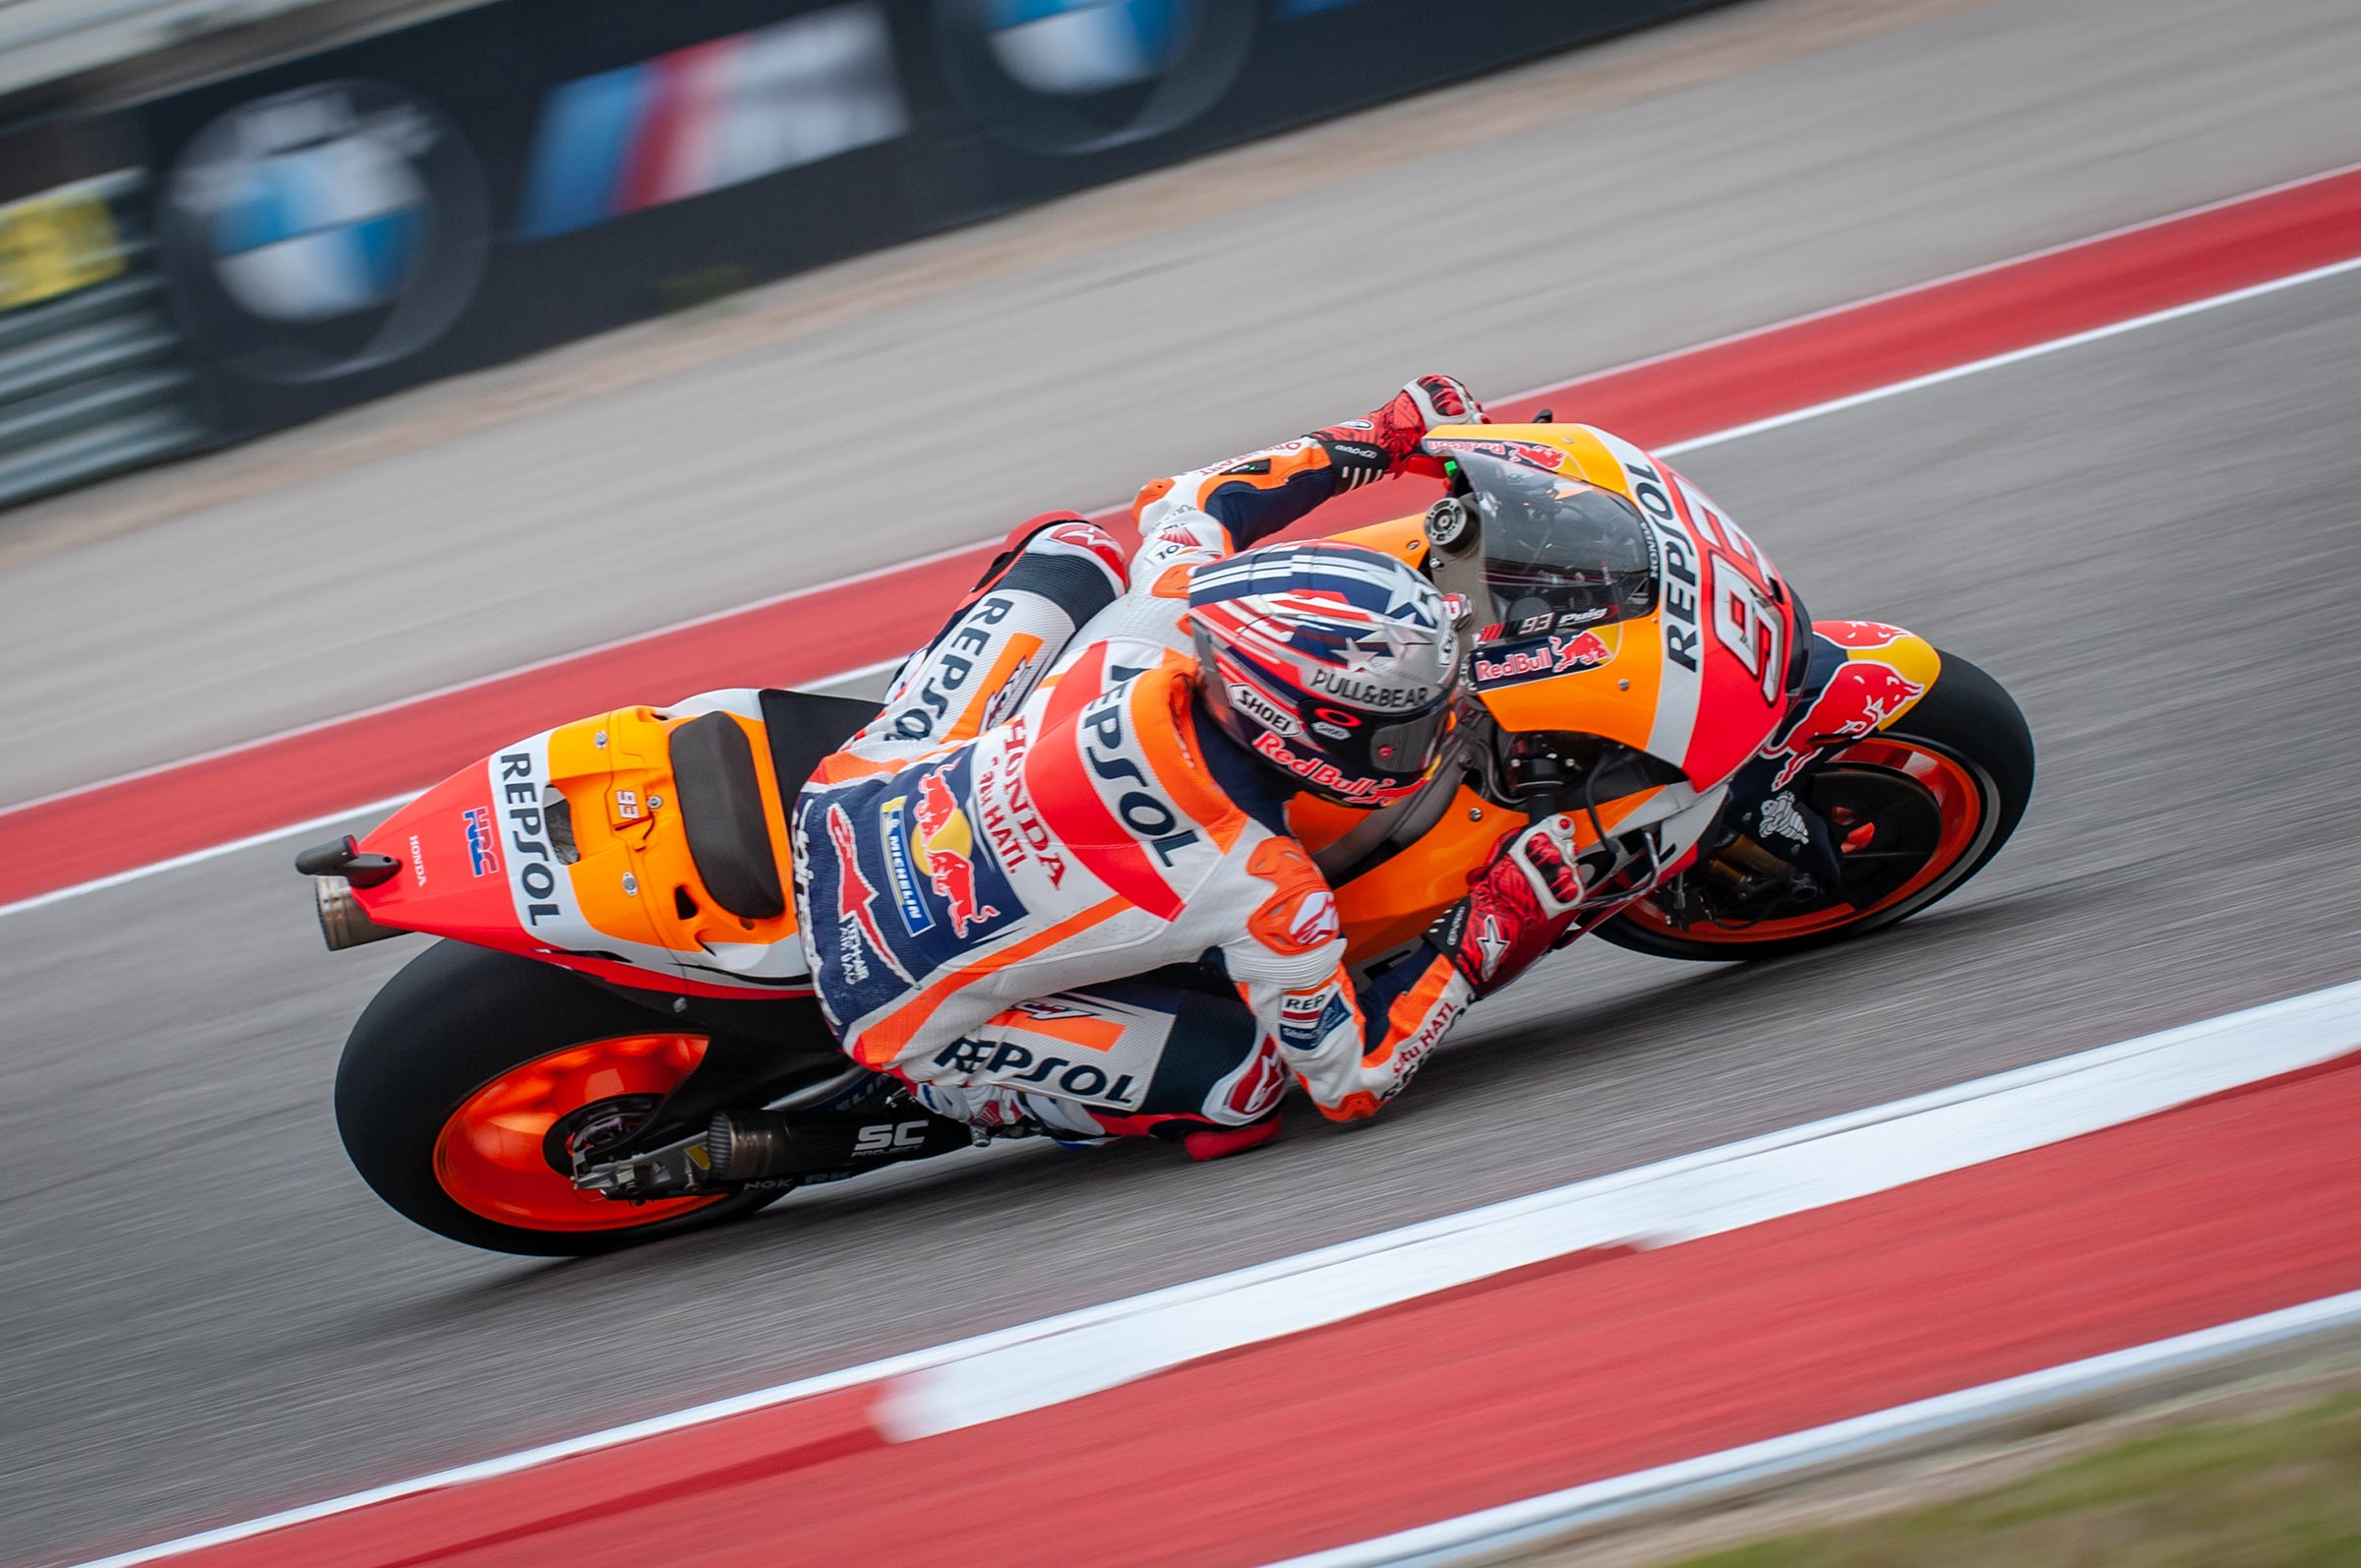 Marquez Continues Qualifying Streak at the Americas GP* - Asphalt & Rubber